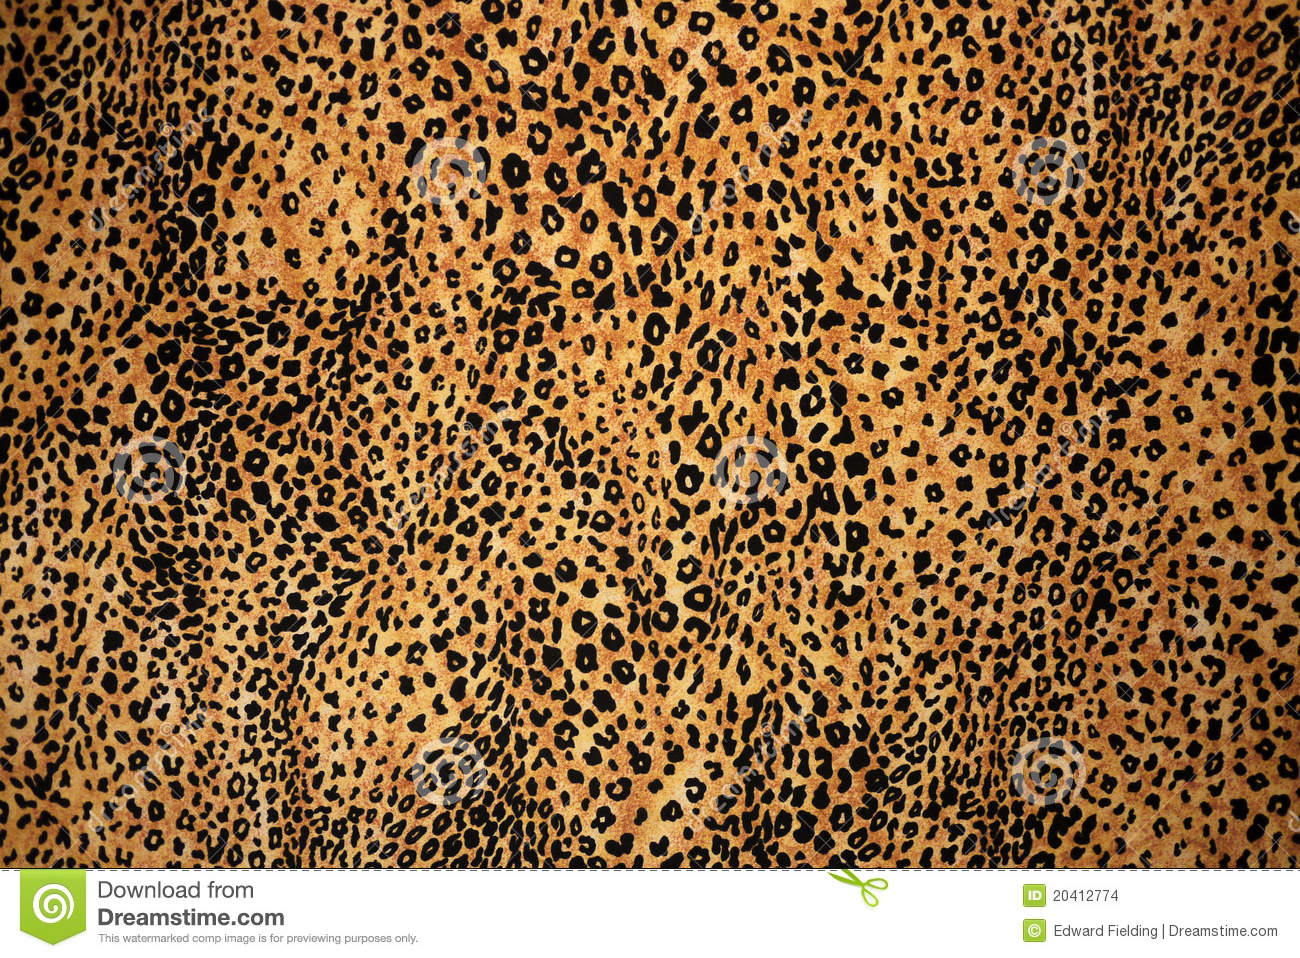 Leopard Animal Print Texture Stock Images - Image: 20412774